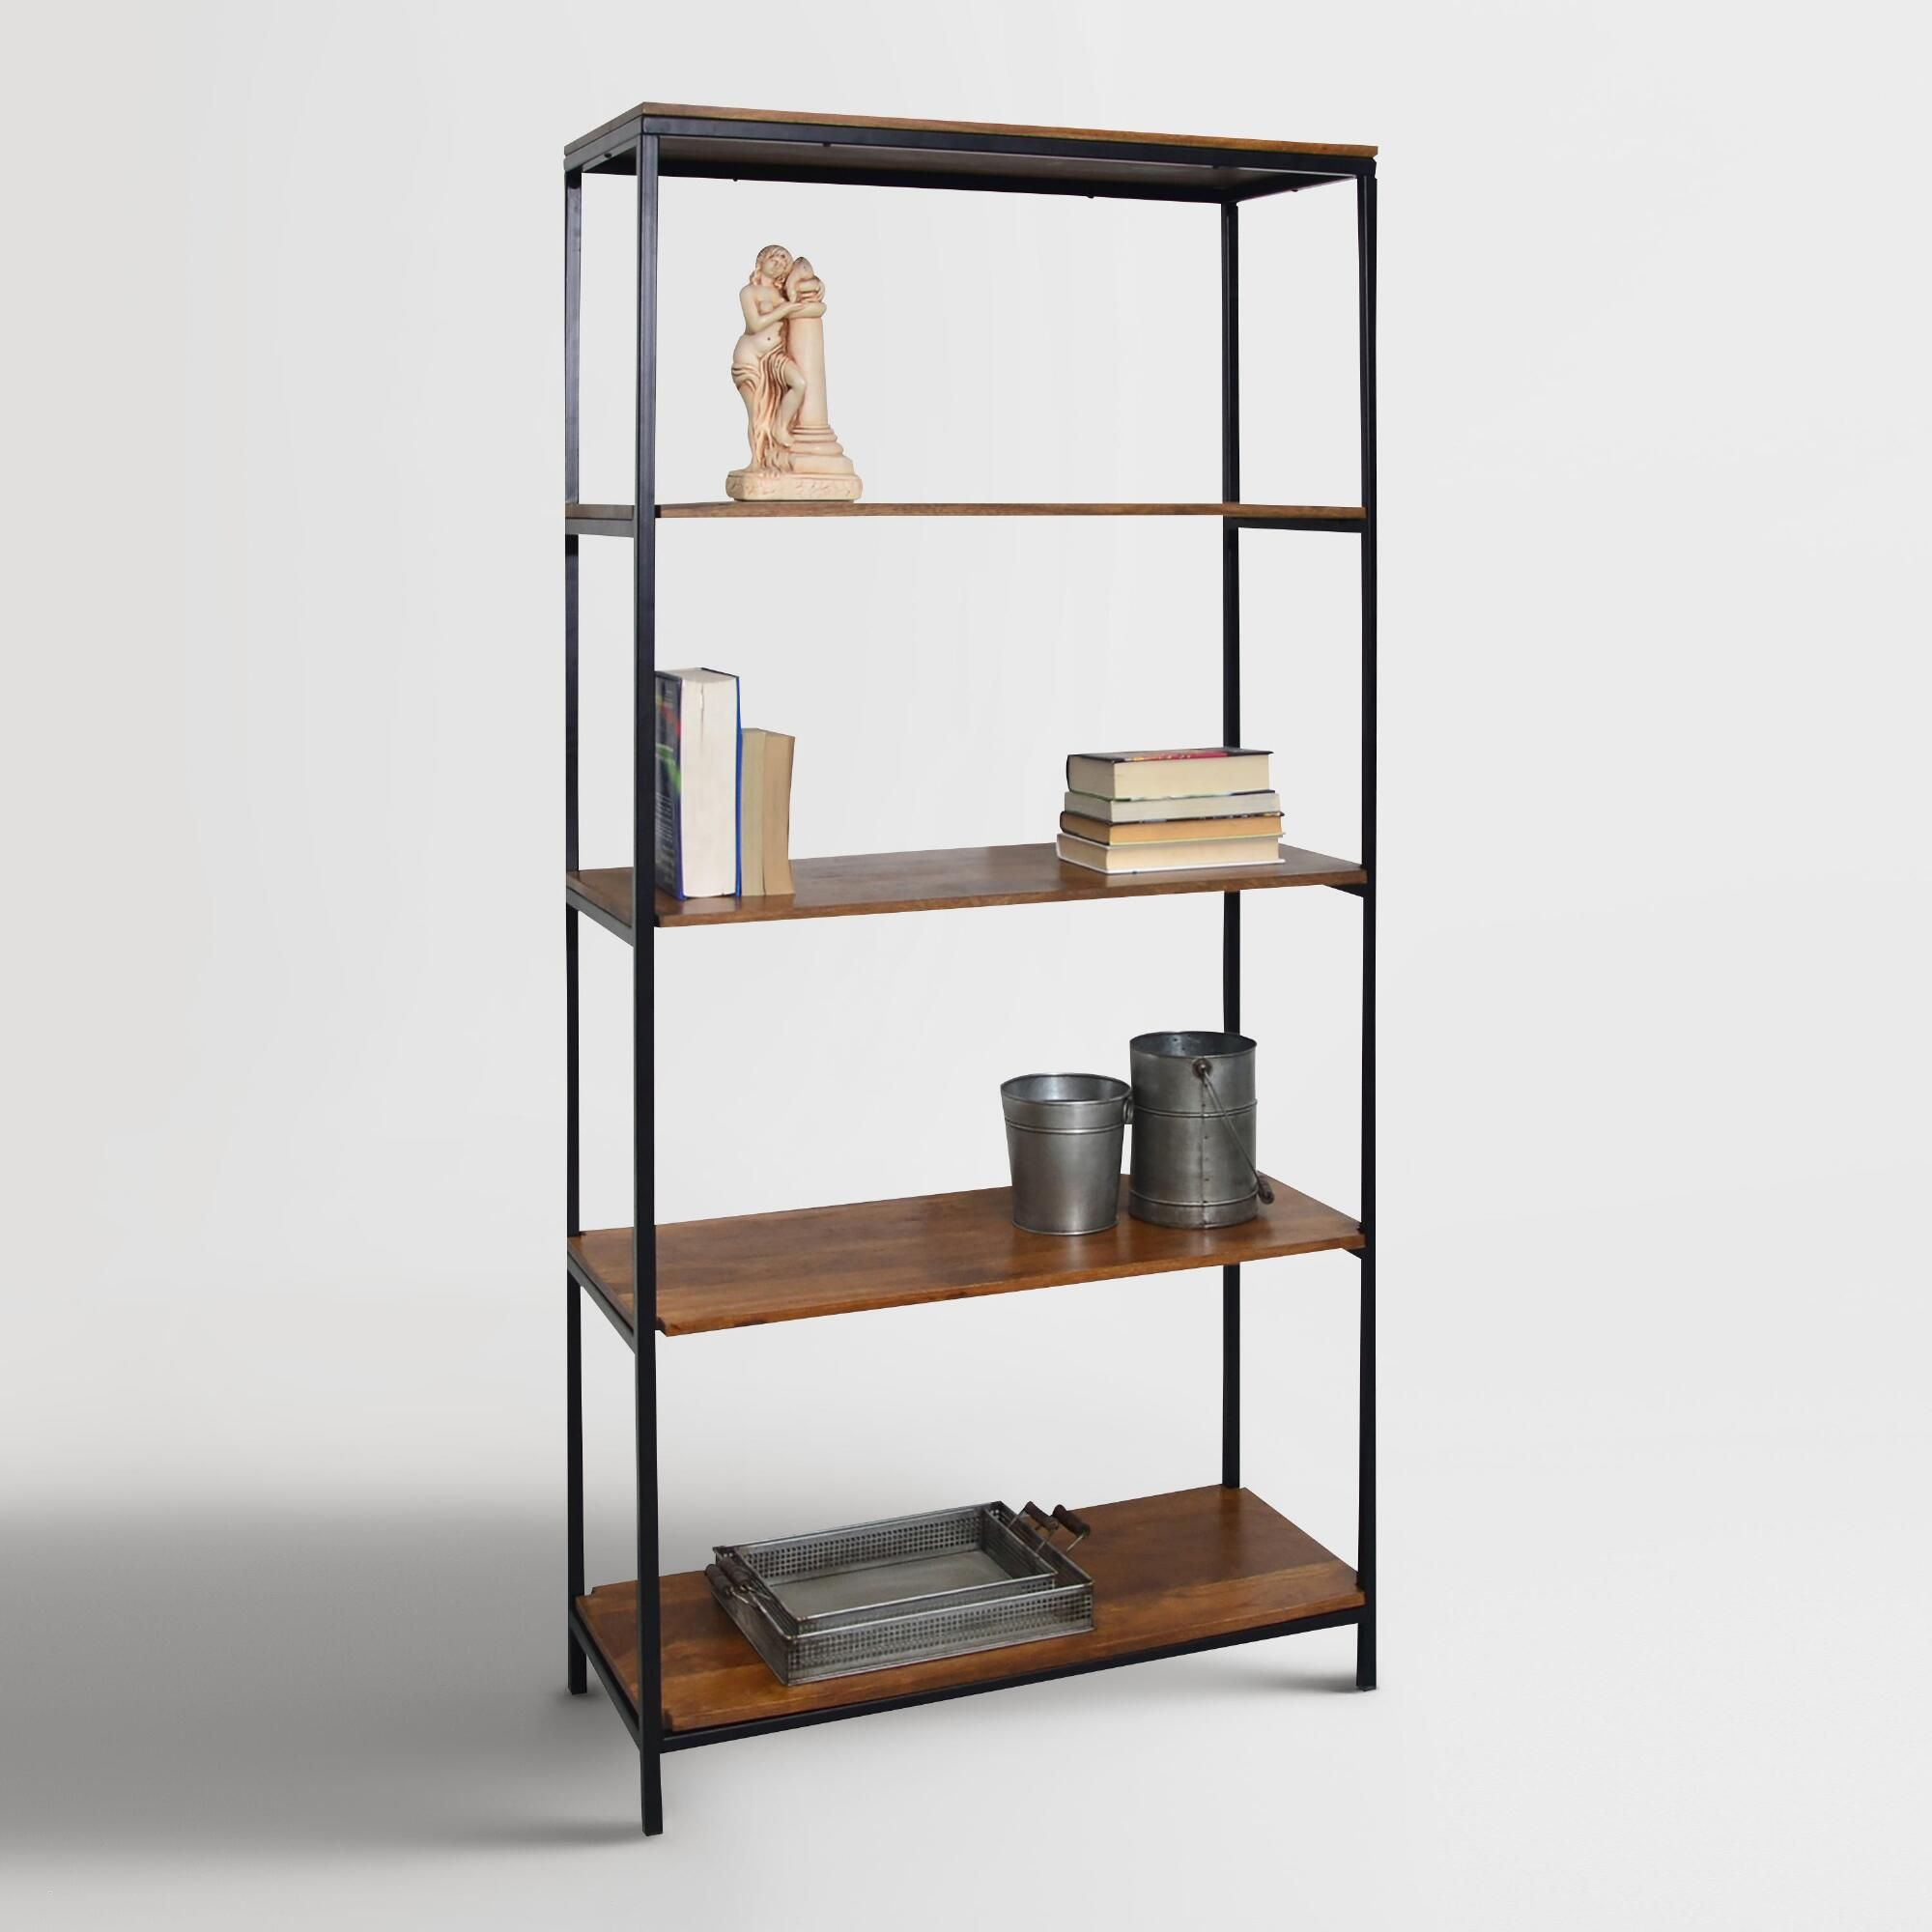 Aluminum Bookcase Our Bookcase Pairs A Black Metal Frame With Chestnut